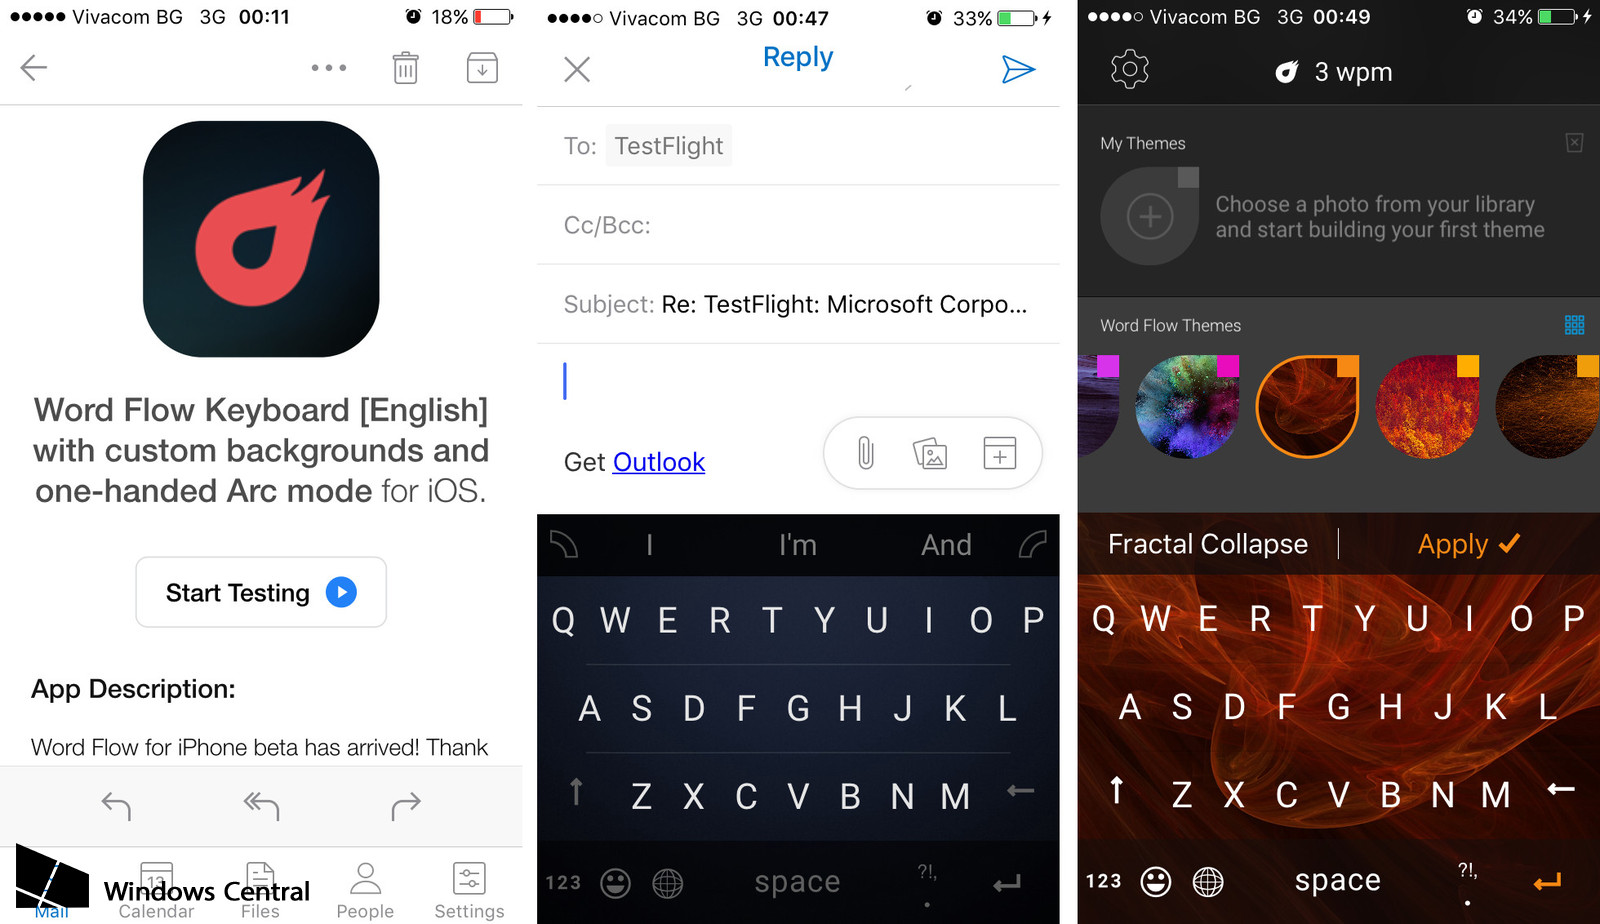 wordflow-ios-screens